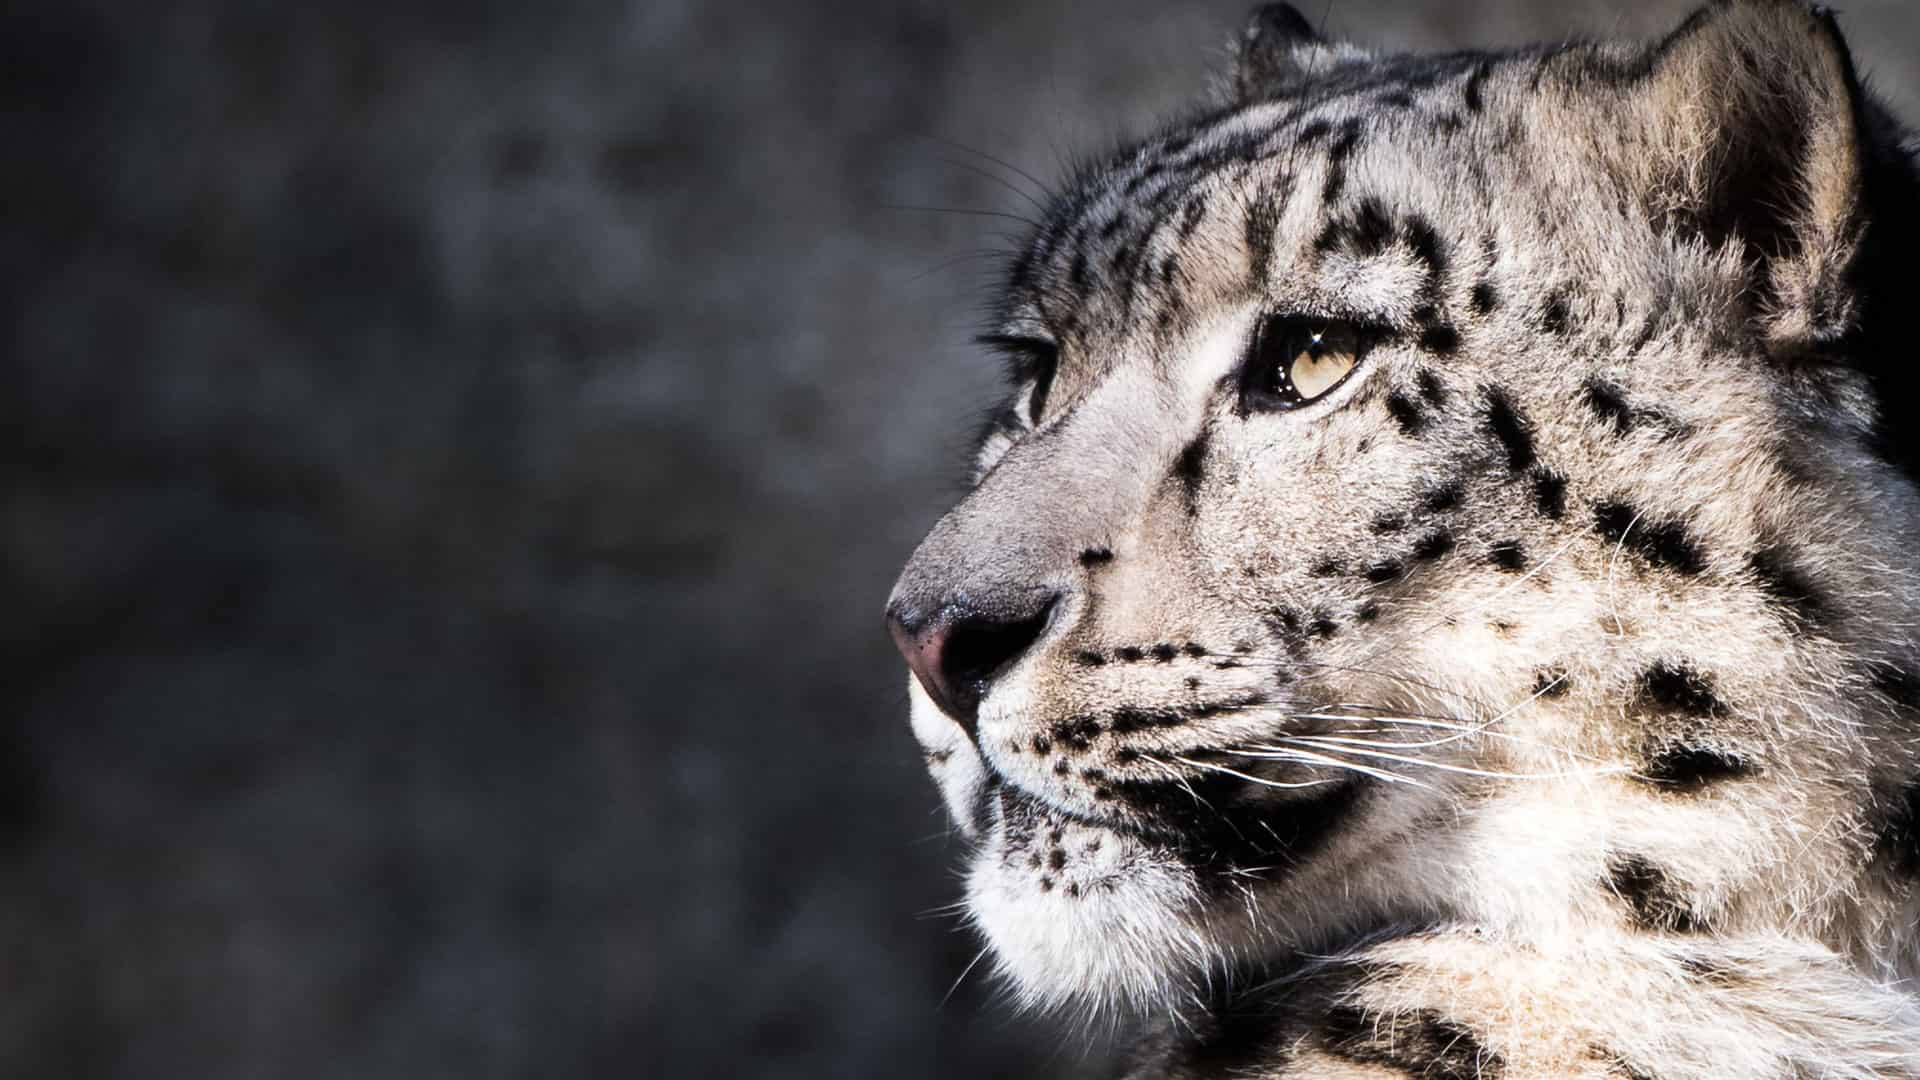 Majestic Snow Leopard Photography By Tim Flach